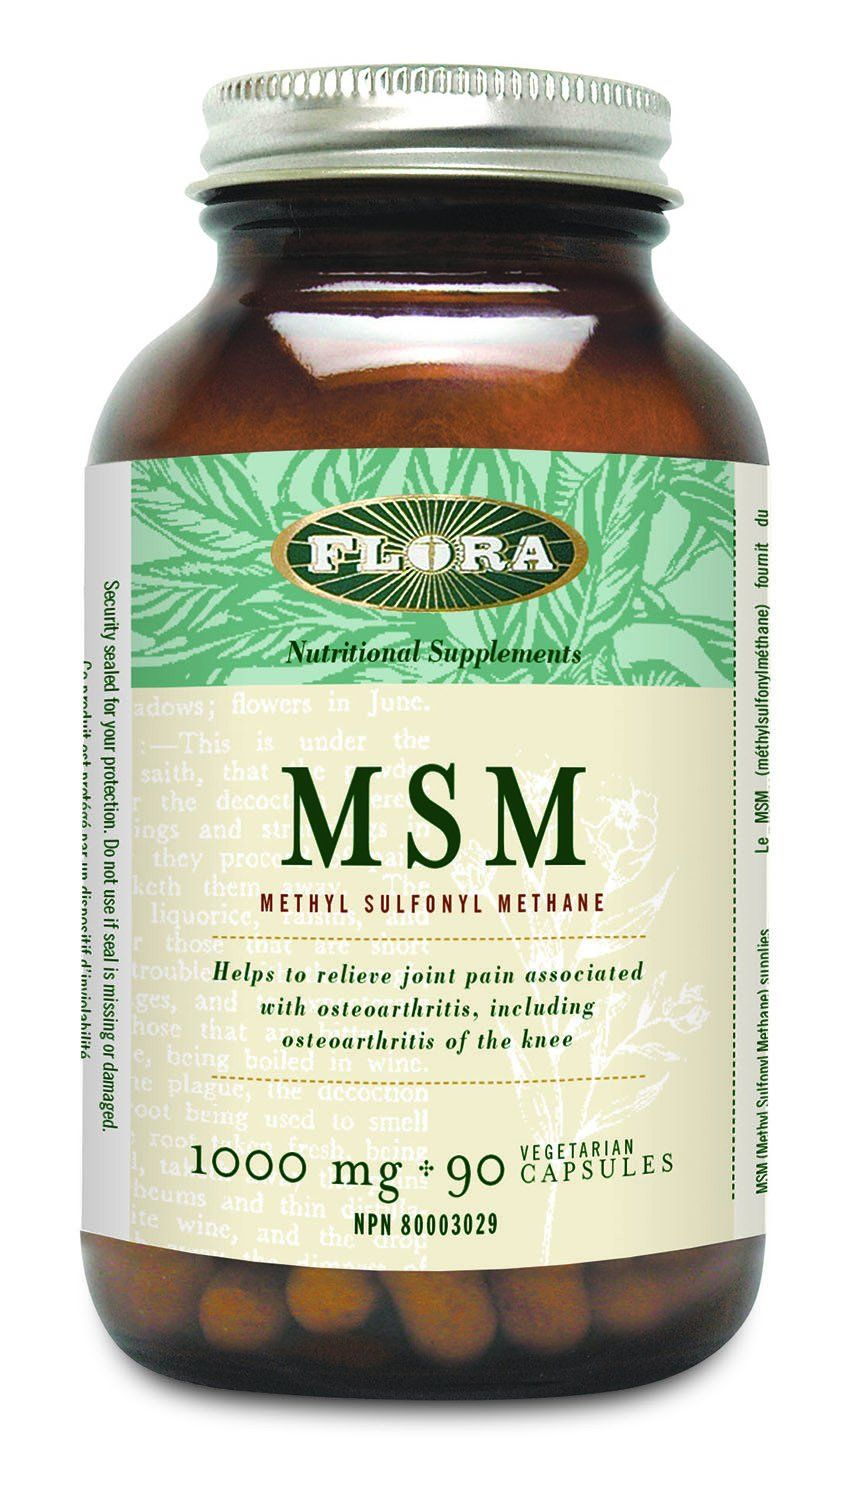 Supplements & Vitamins - Flora - MSM (MSM Methyl Sulfonyl Methane), 90 Vc